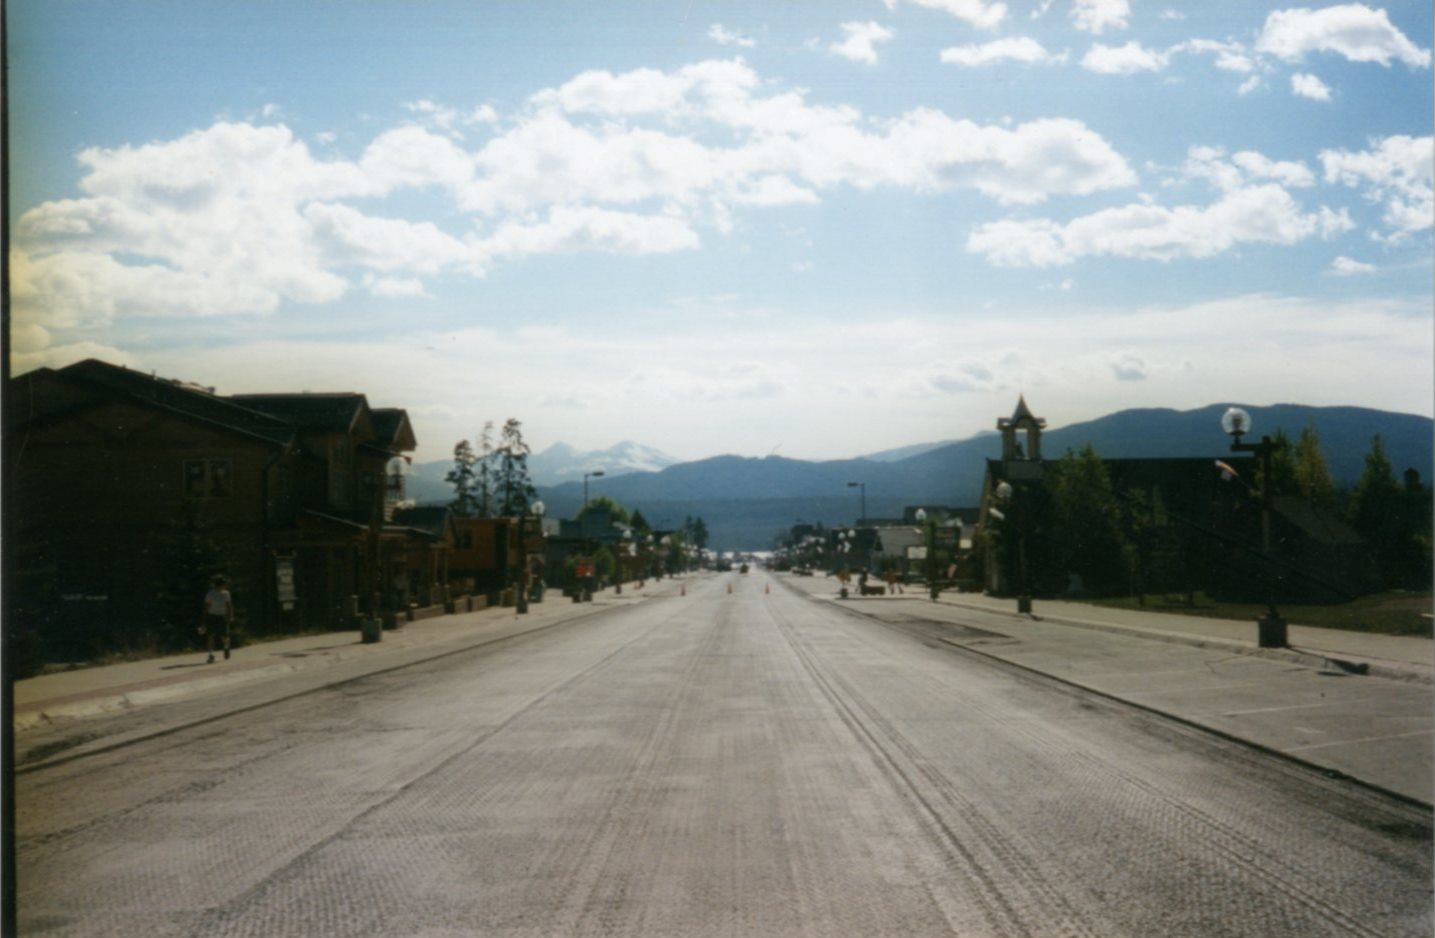 Main Street in Frisco,  during a paving project looking towards the Continental Divide. Circa 1990's.